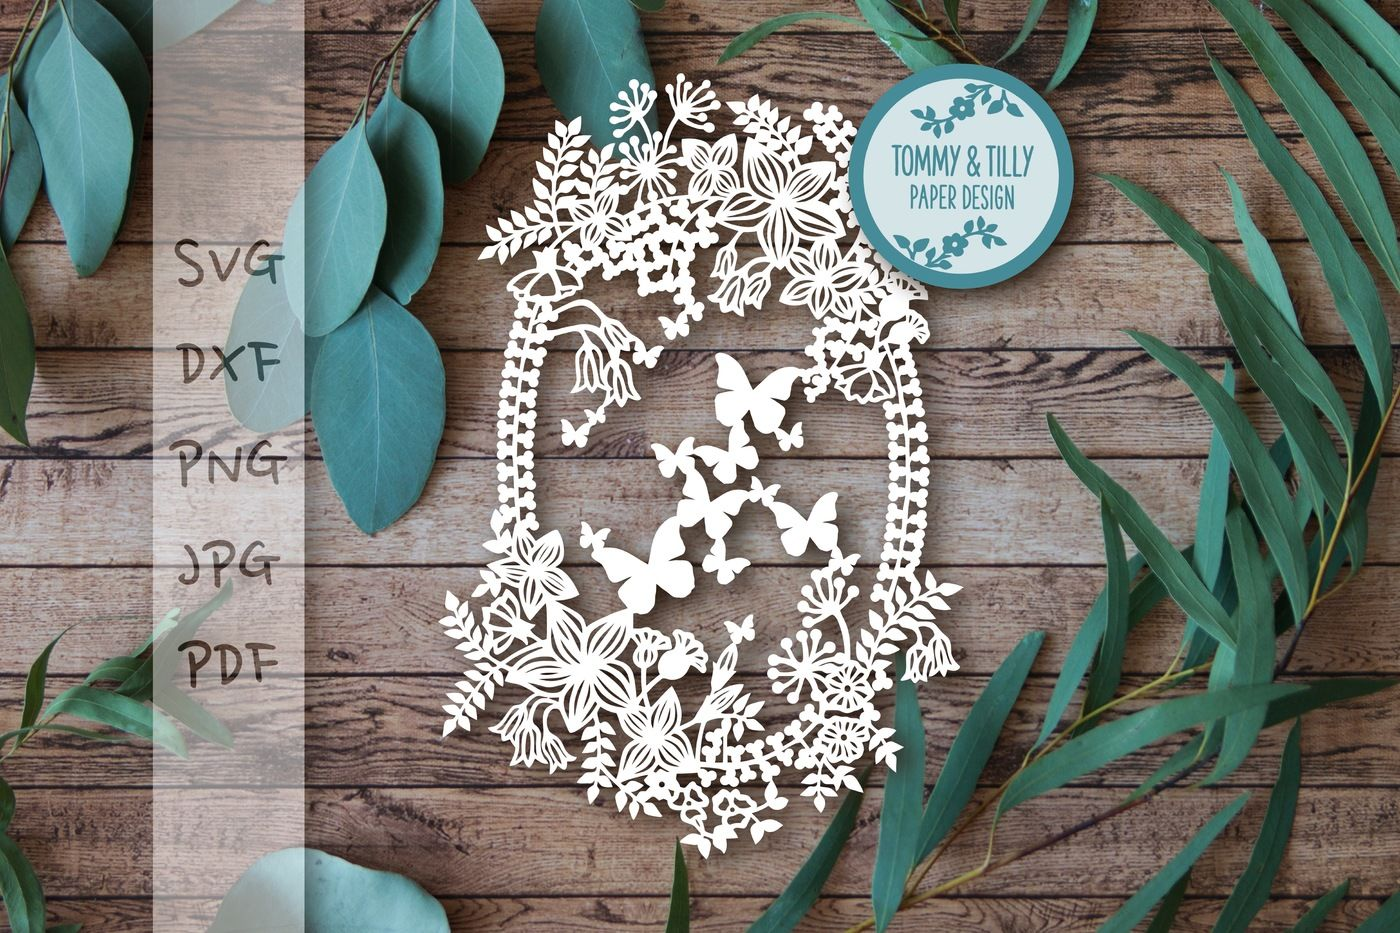 Spring Garland Svg Dxf Png Pdf Jpg By Tommy And Tilly Design